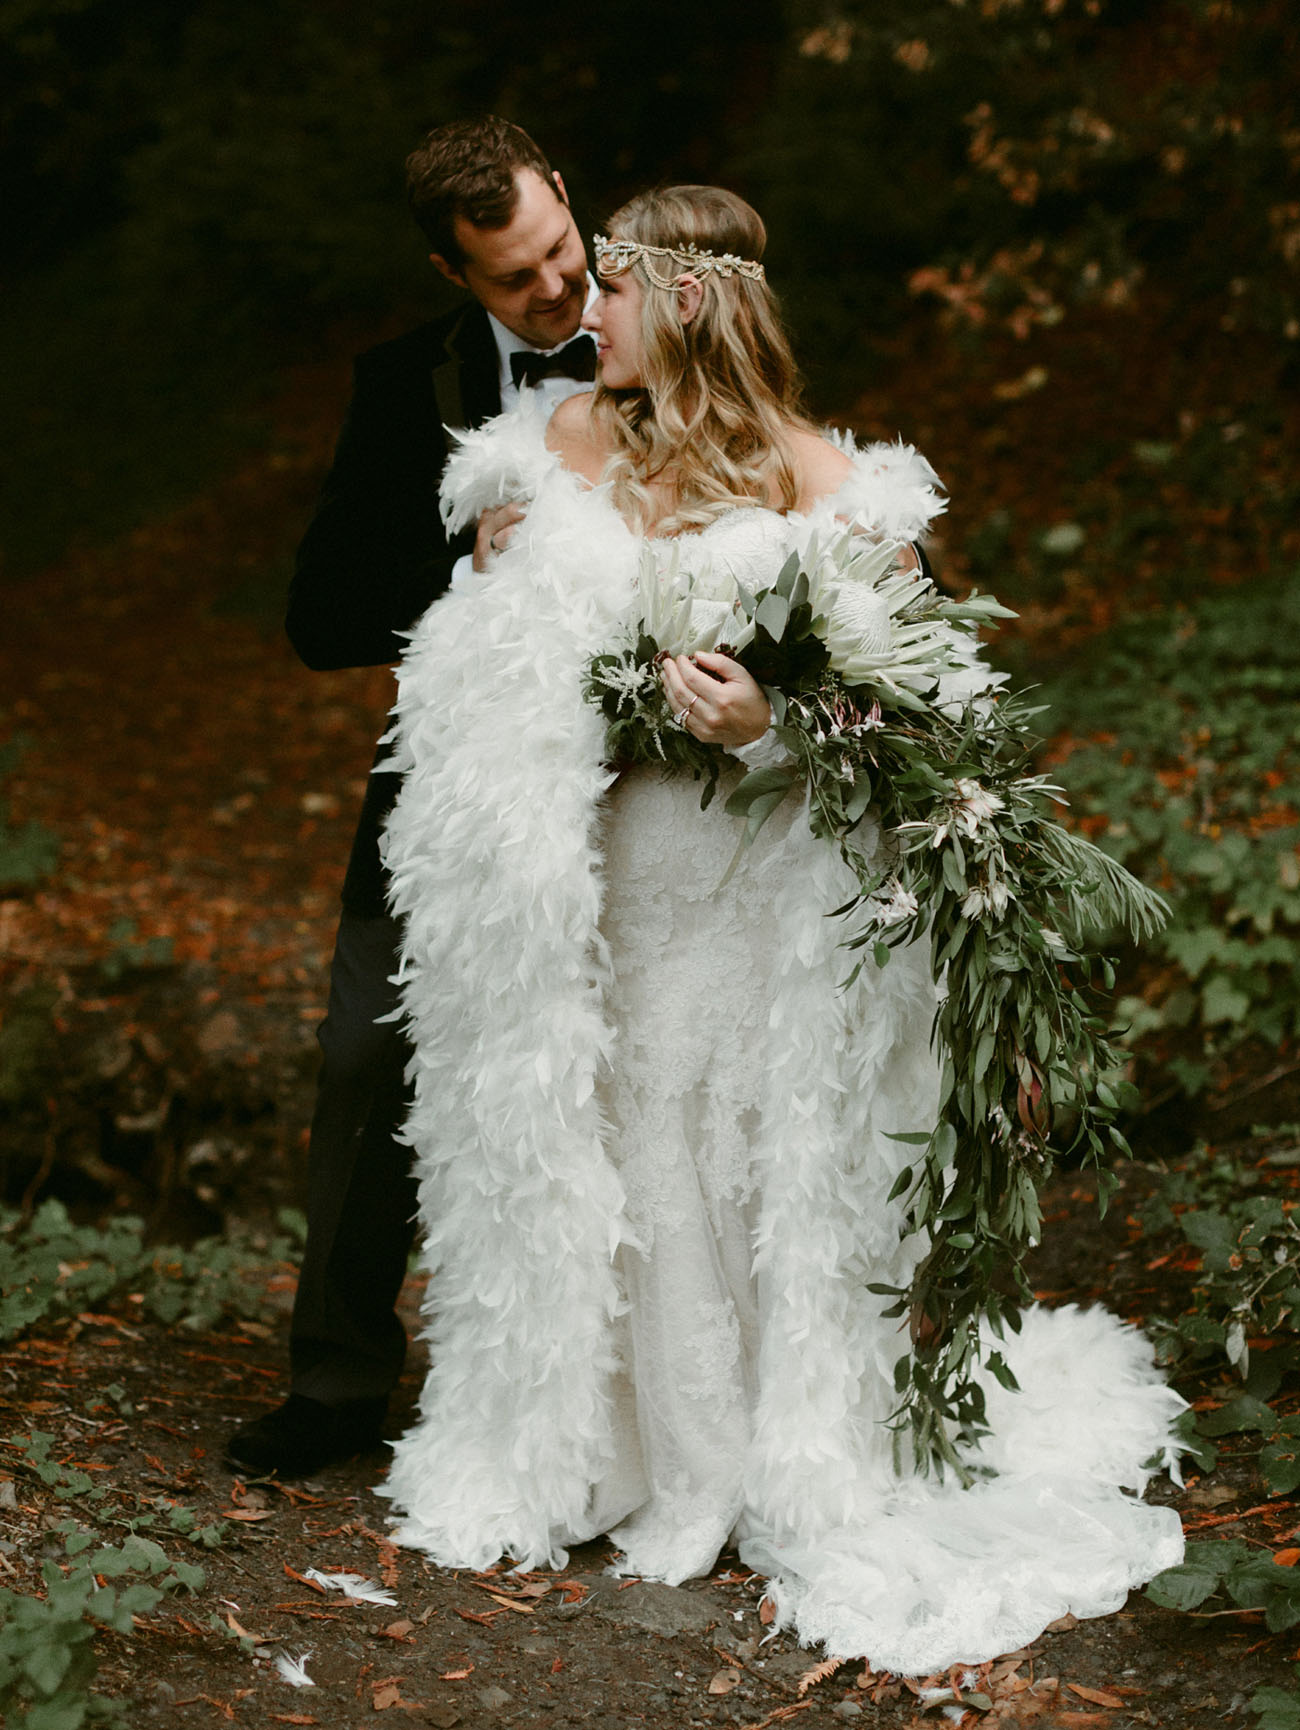 A Fairytale Forest Wedding with a Feather Cape - Green Wedding Shoes